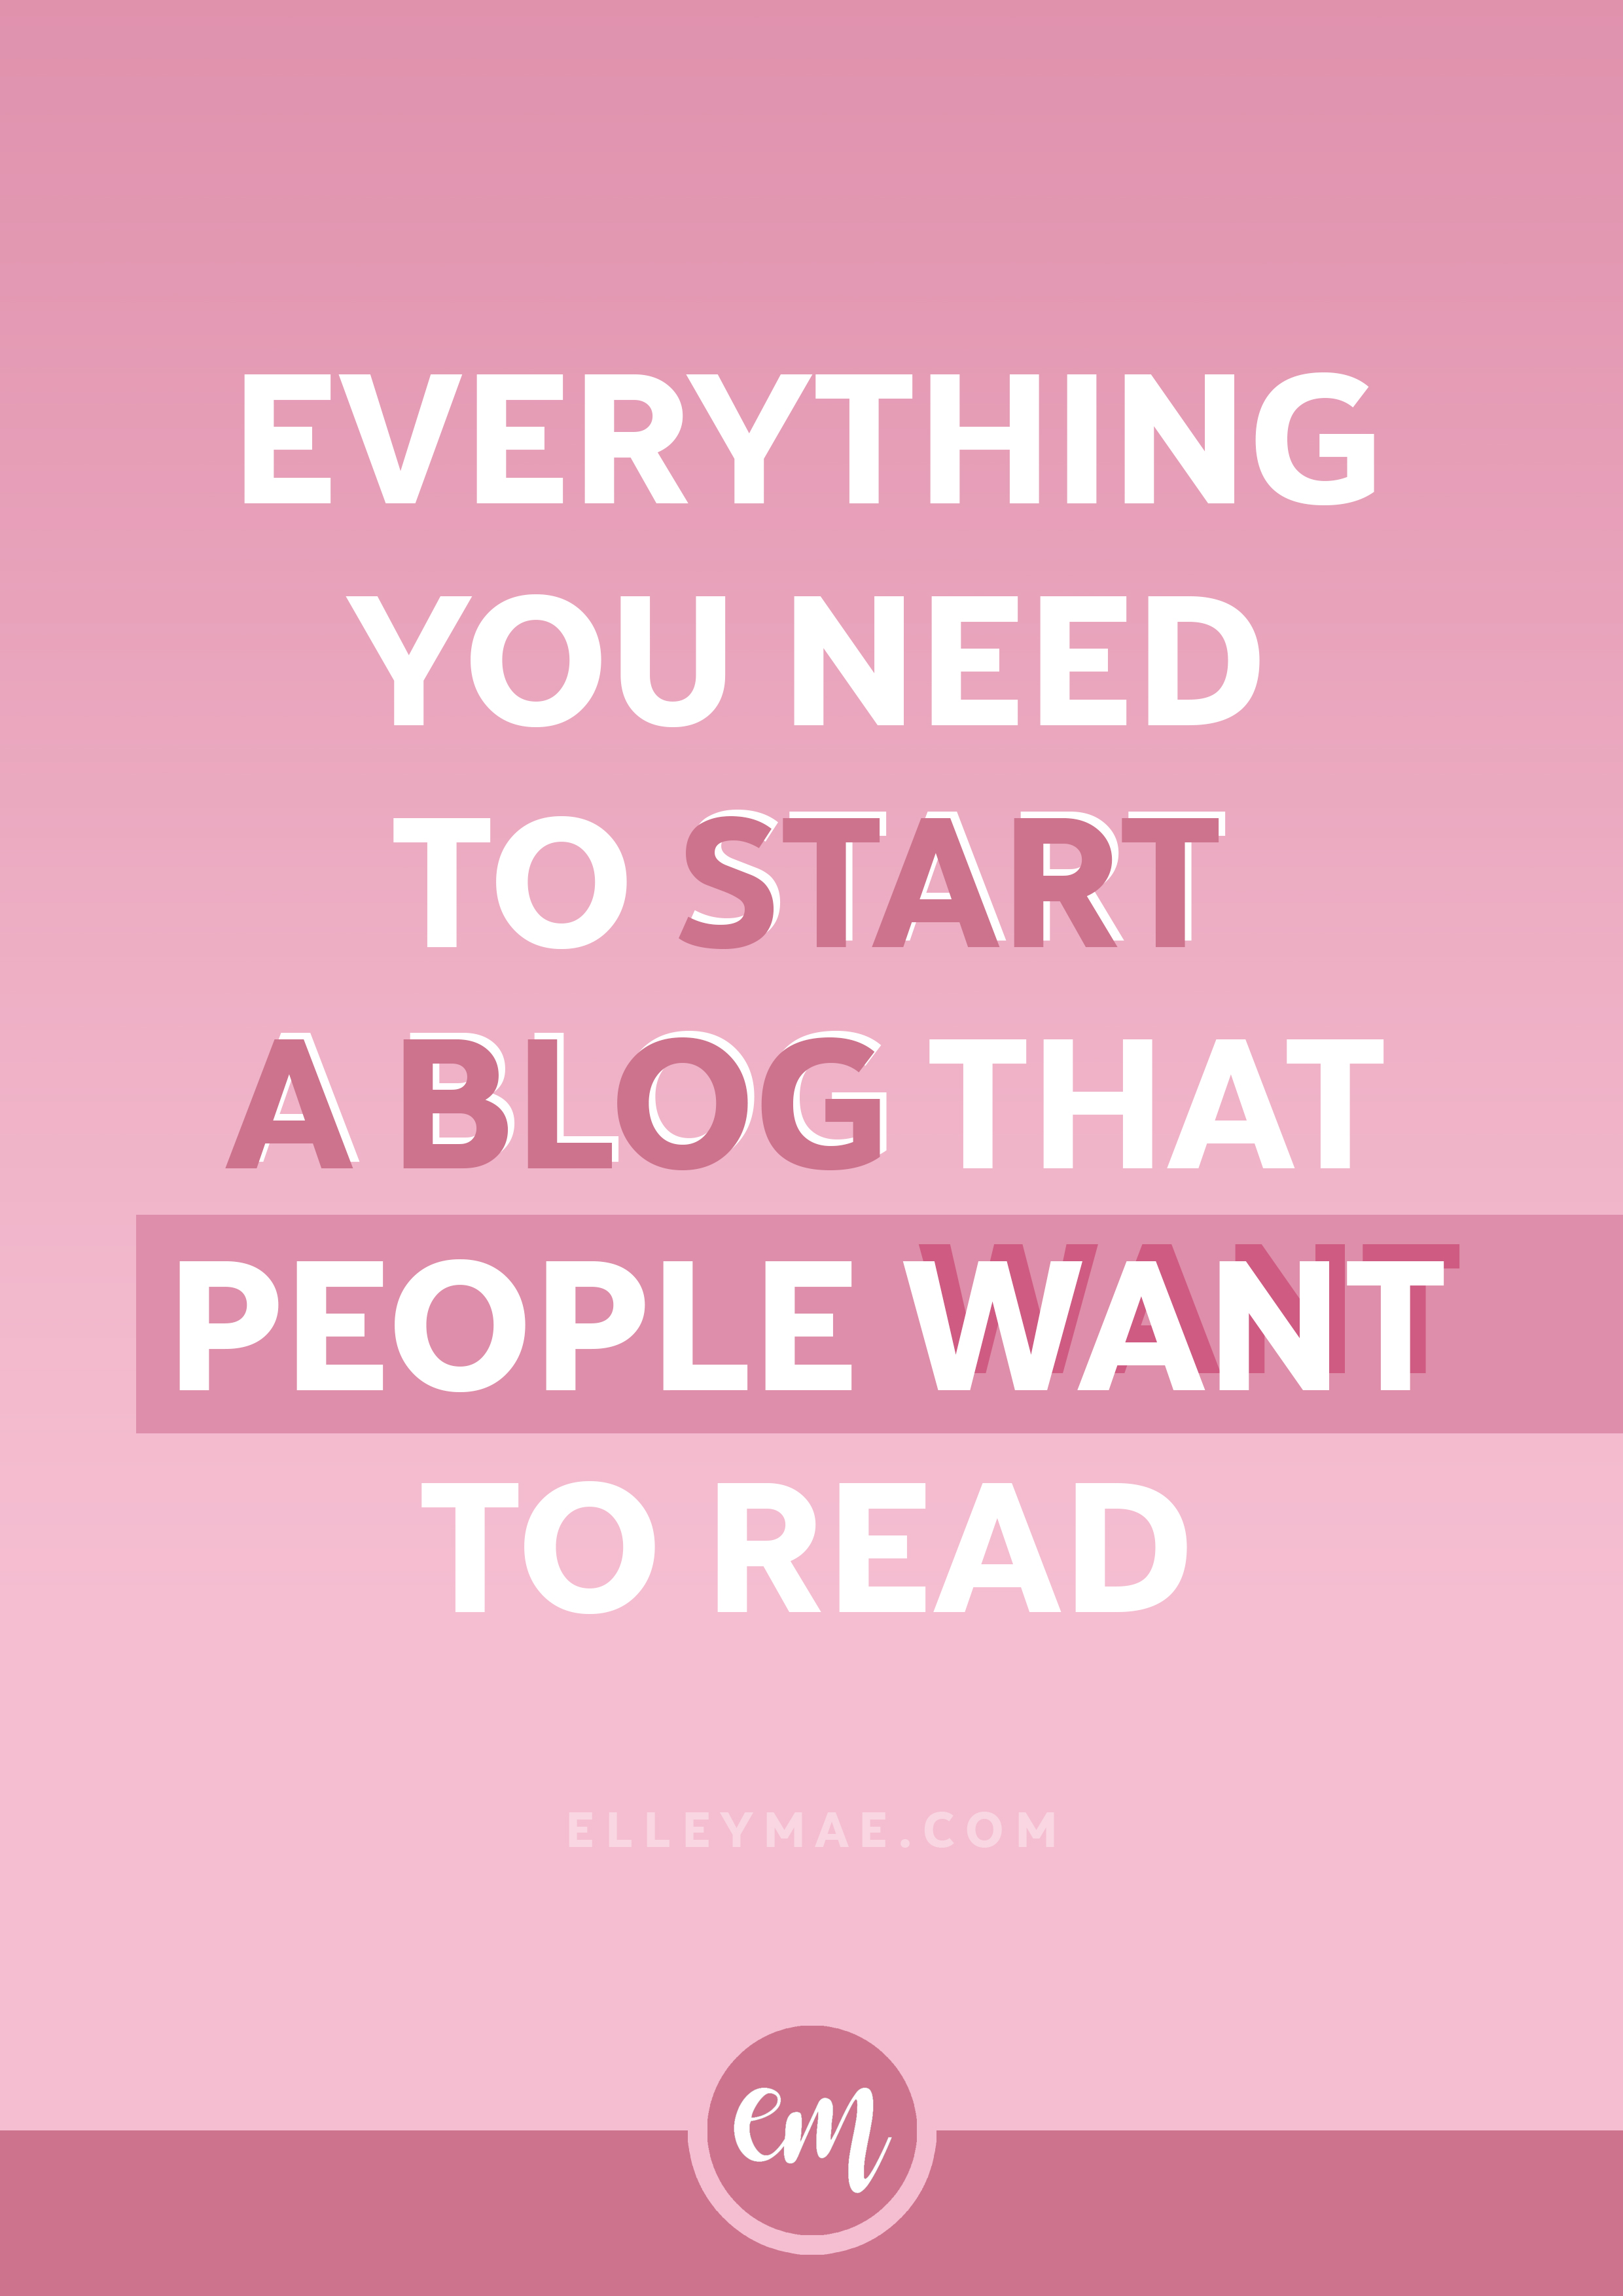 Start A Blog | So you're ready to start your own blog but not sure where to start, hey? No worries - use my method & you'll have lots of traffic, social media subscribers & more in no time! Learn More at ElleyMae.com | Grow Your Blog | Get Instagram Followers | Free Blog Design | Start A Blog | Start A Lifestyle Blog | Start A Mom Blog | Start A Beauty Blog | Make Money Online | Make Money From Home | Blogging For Beginners & More!